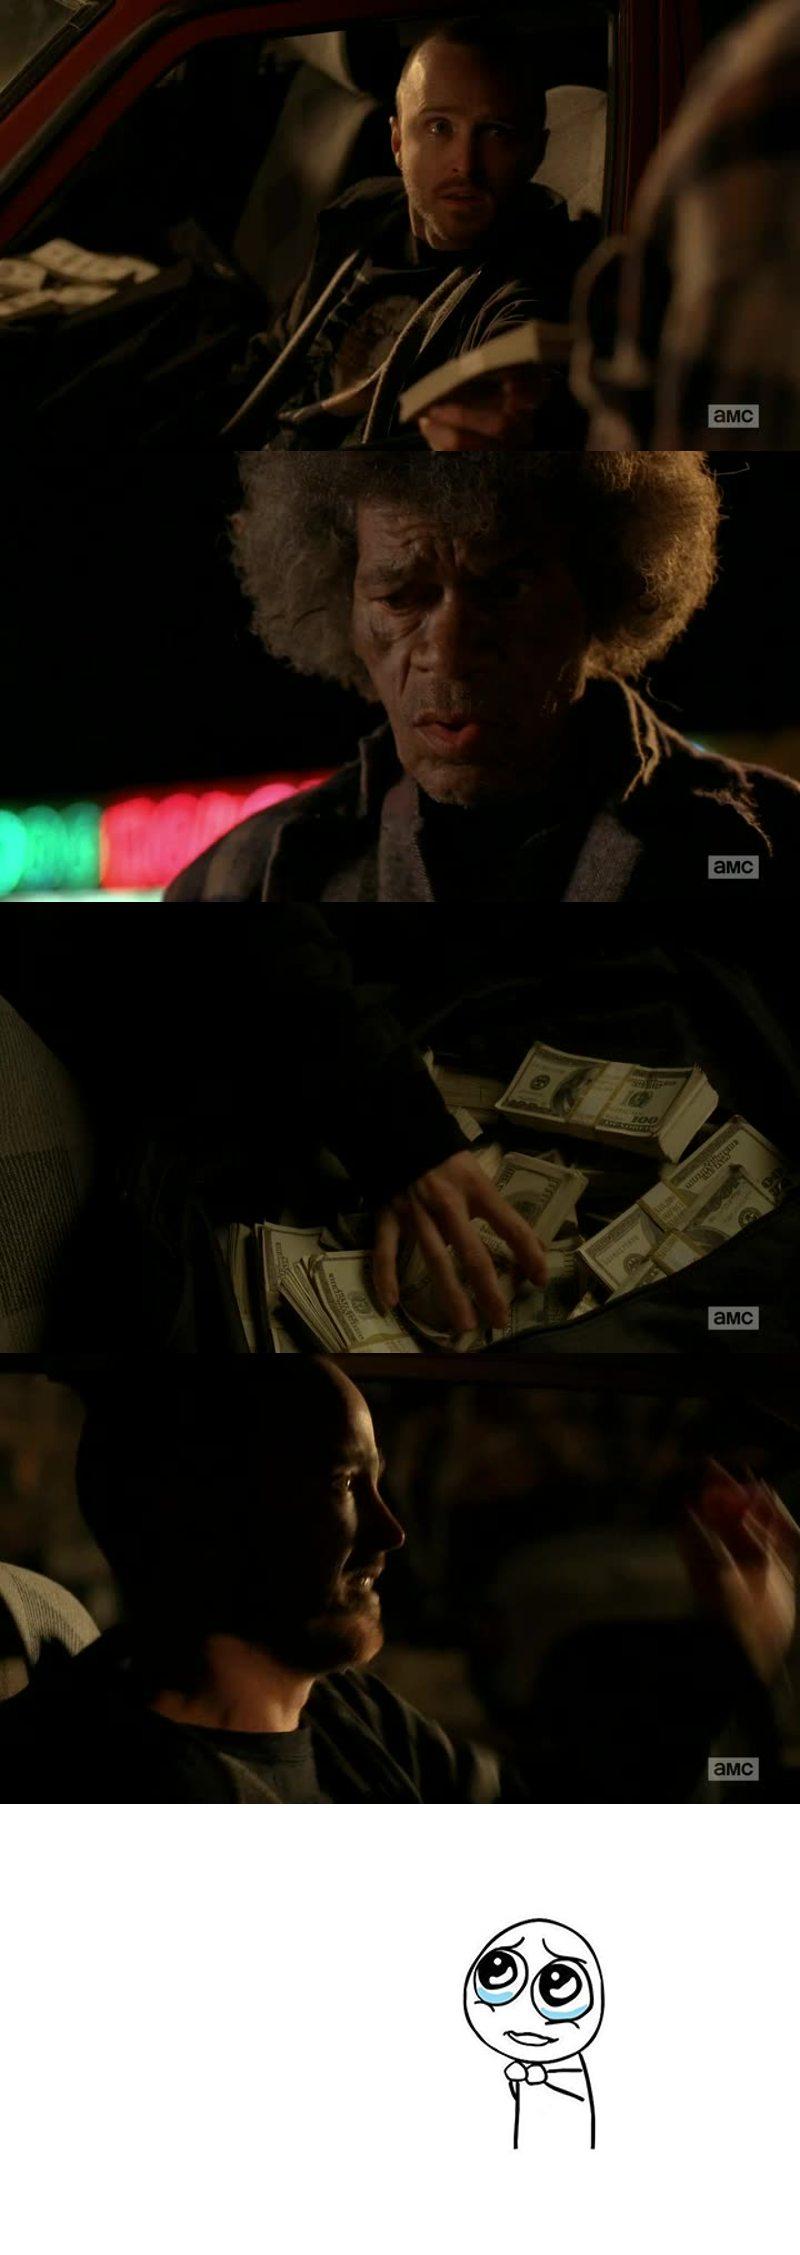 Jesse blames himself about everything when it actually is Walter's fault. Hank was really good in putting all the pieces together and the fight with Walt was one of the best scenes of the series.